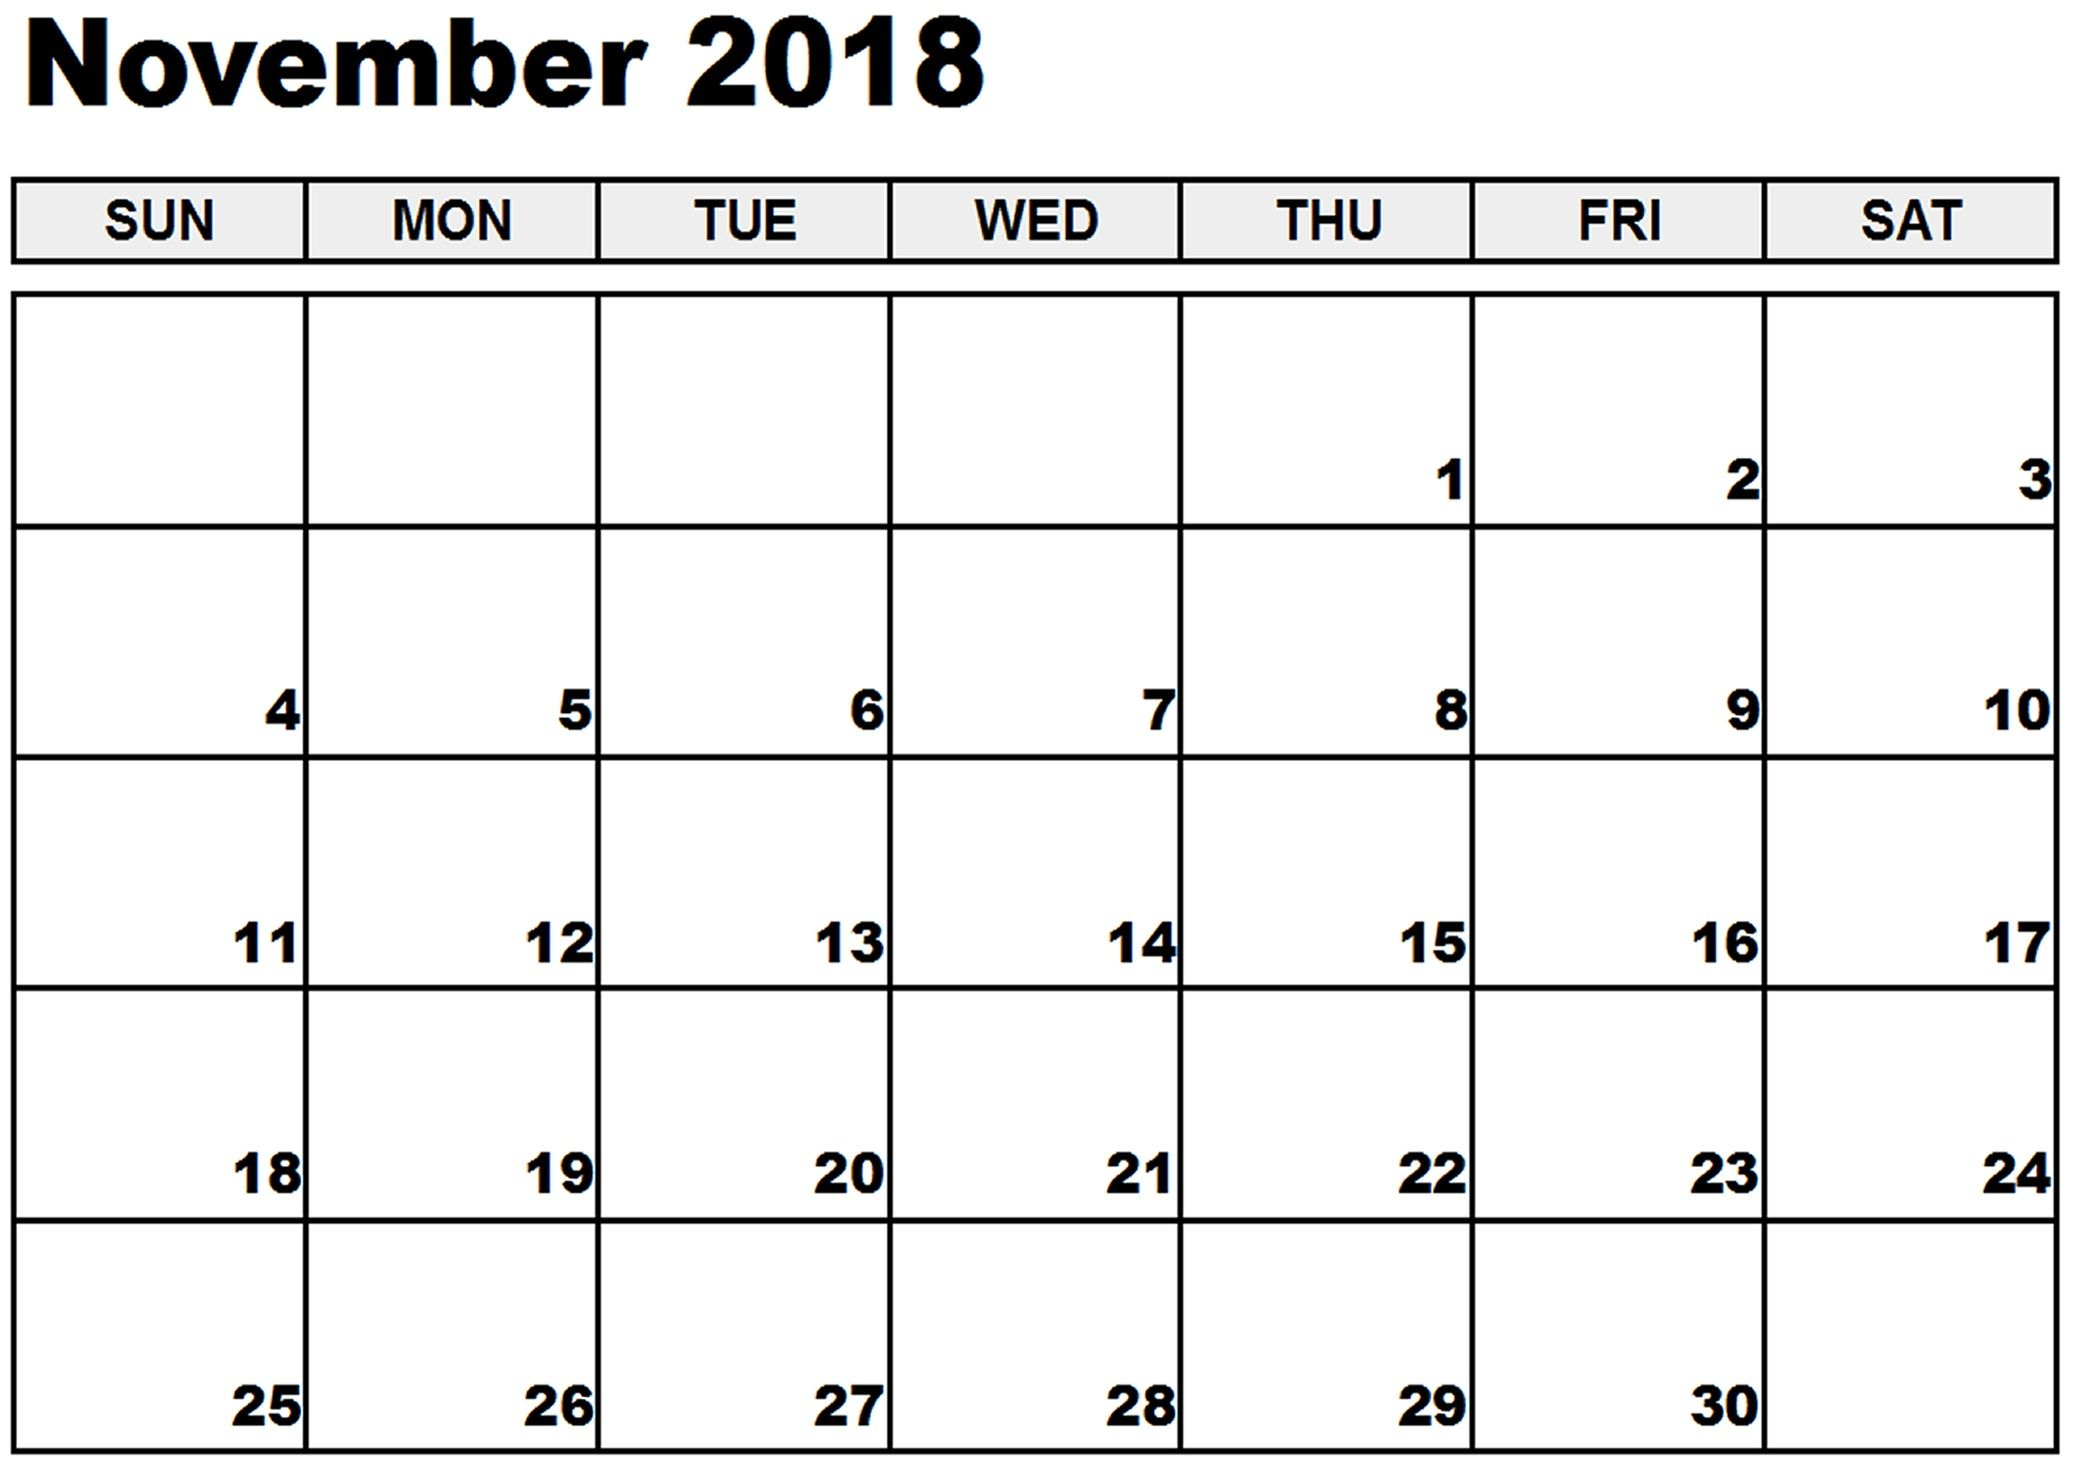 photograph regarding Printable Nov. Calendar called Printable November 2018 Calendar Cost-free Obtain November